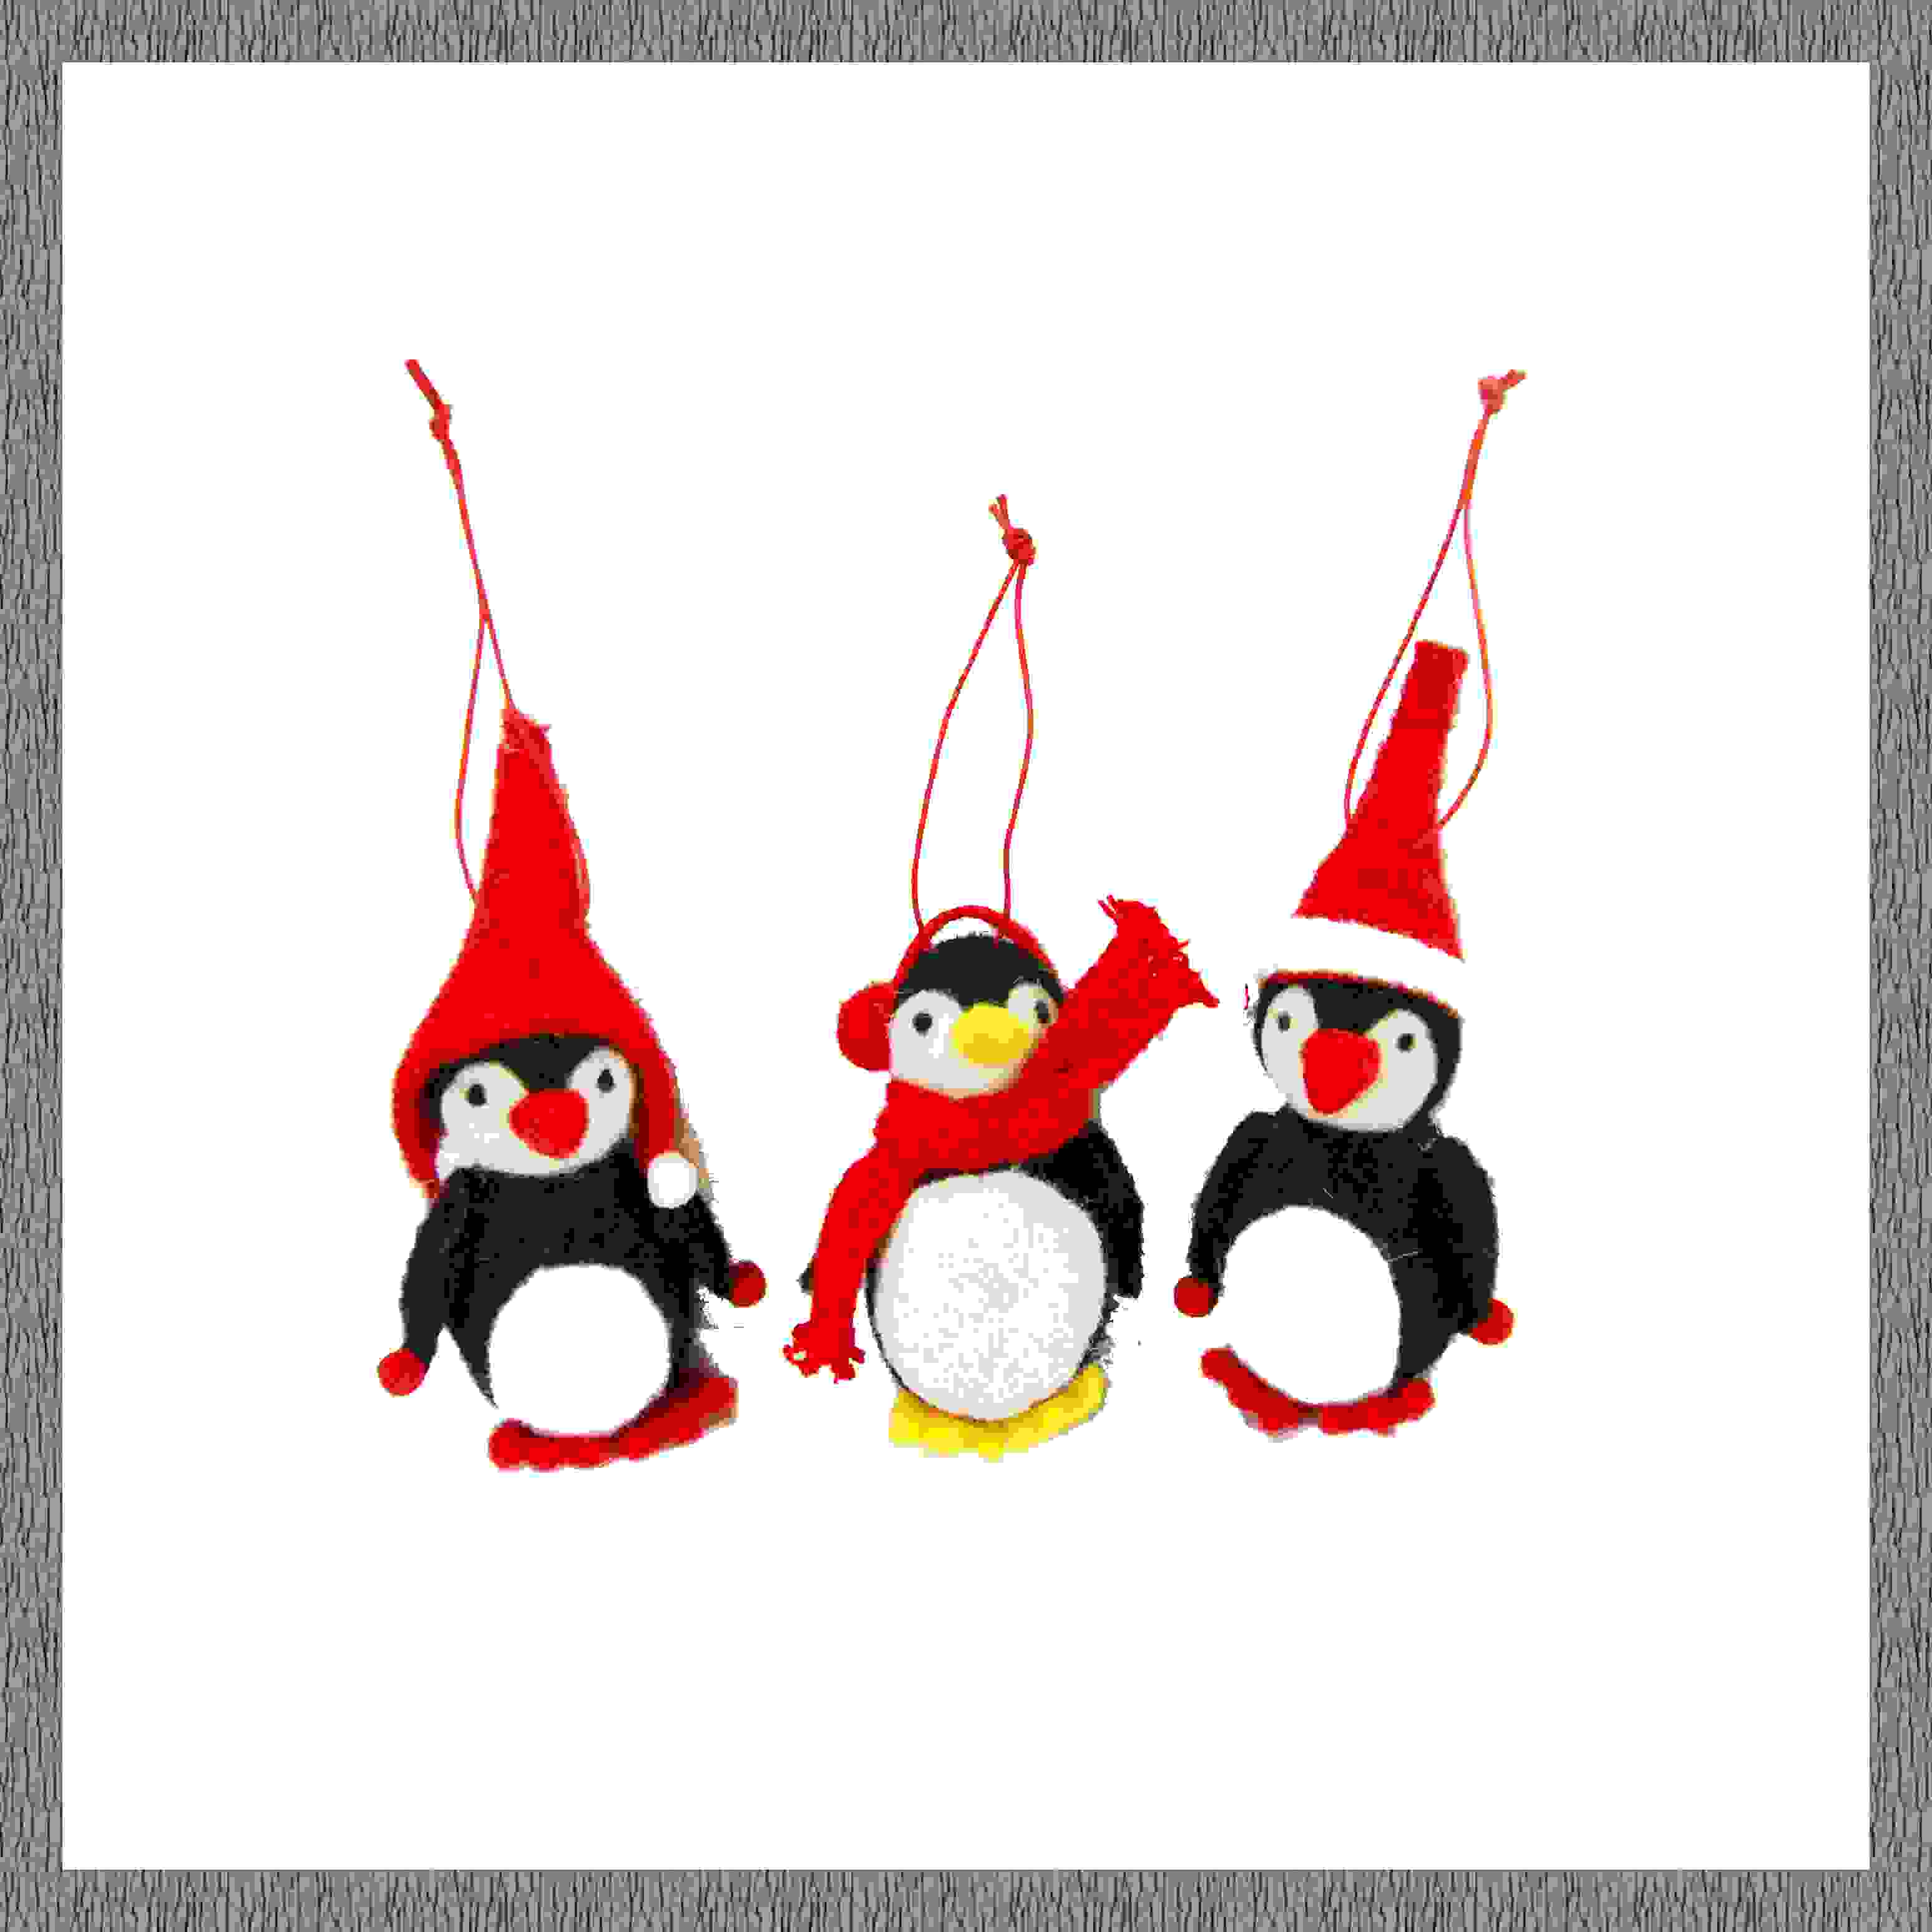 HANG. FESTIVE PENGUINS ASS.